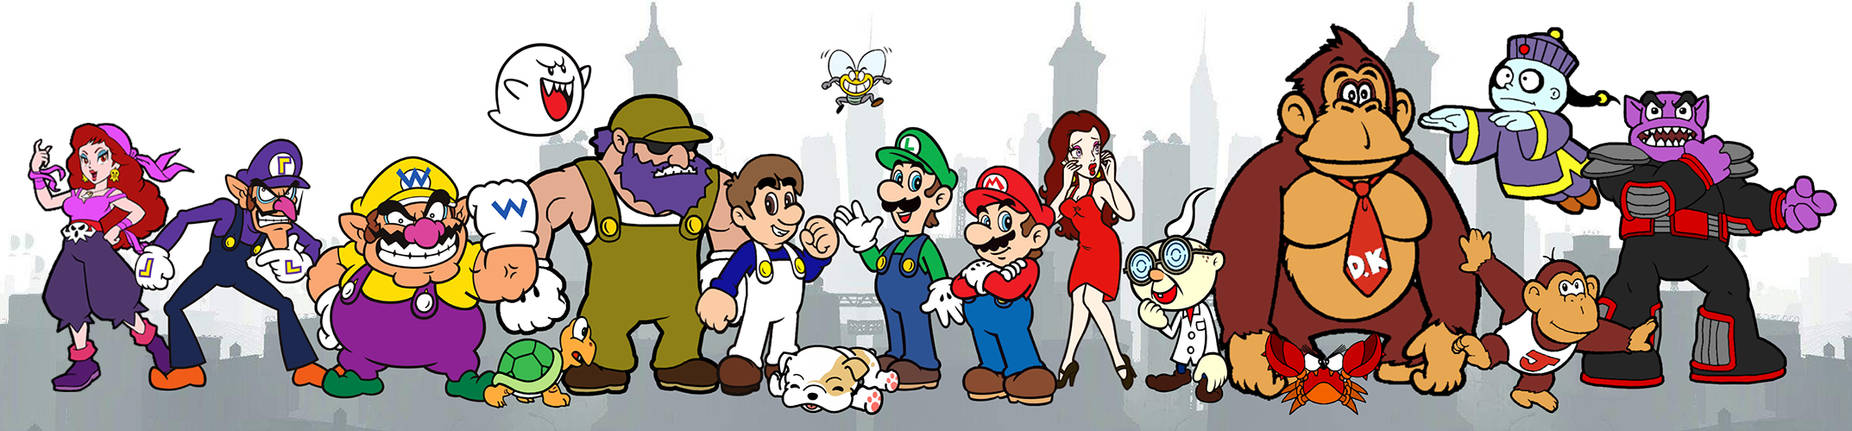 Alternate Reality Mario Bros Cast